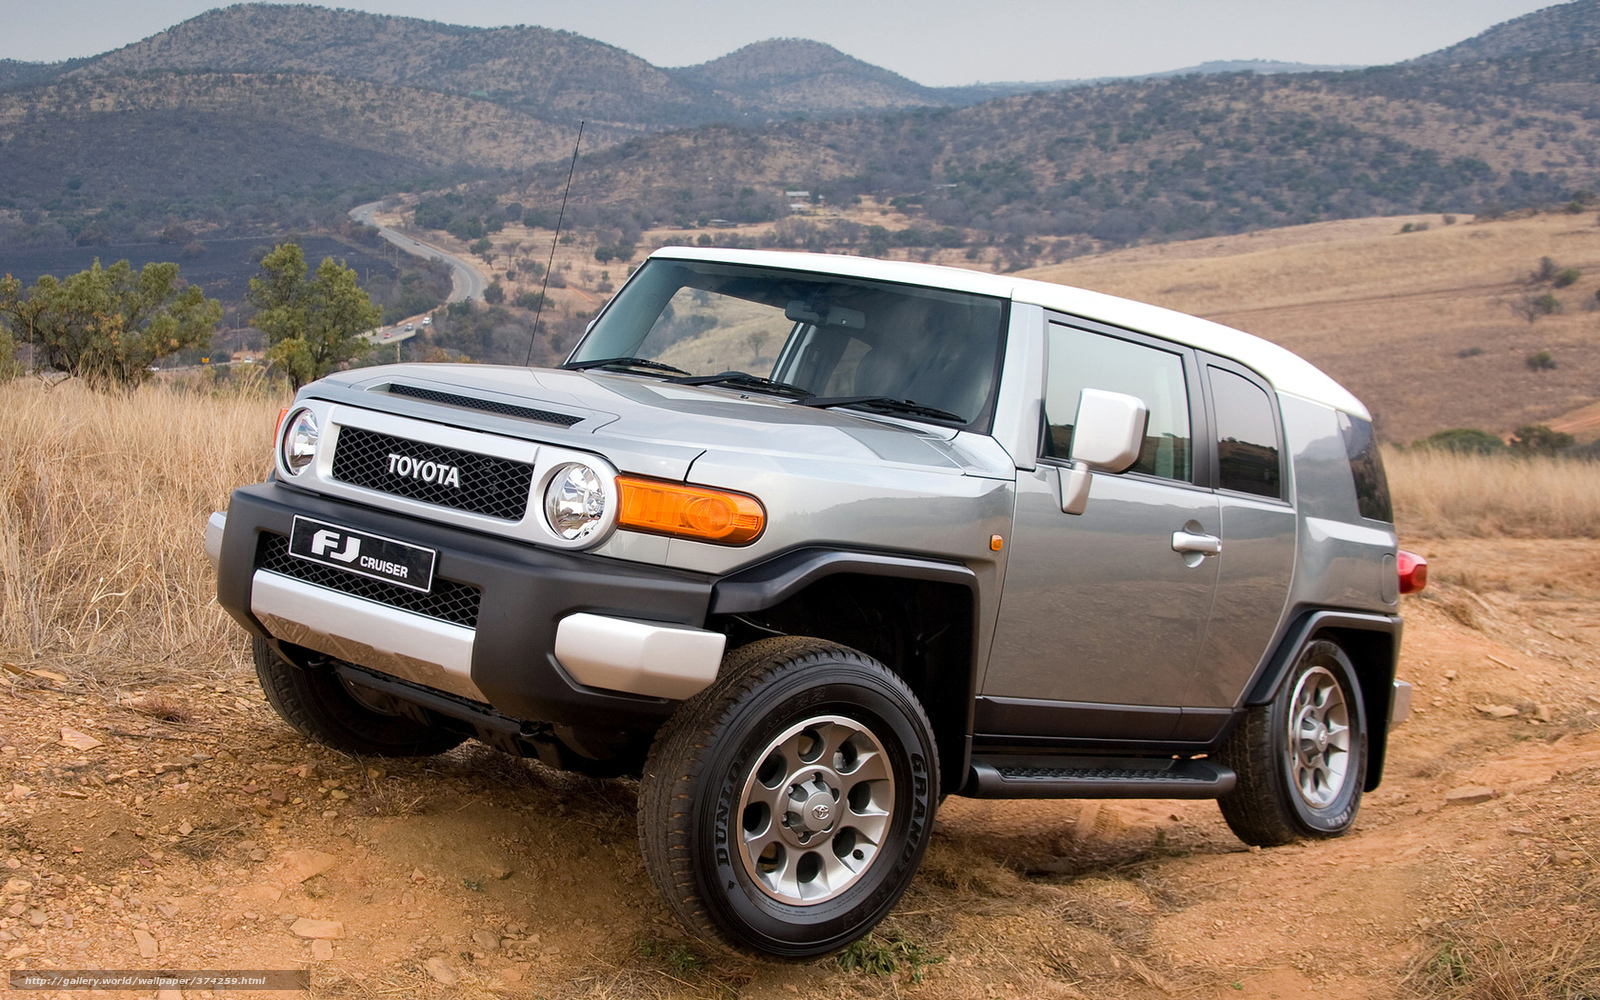 Off Road Jeep Images >> Download wallpaper Toyota, VF, Cruiser, jeep free desktop wallpaper in the resolution 1680x1050 ...